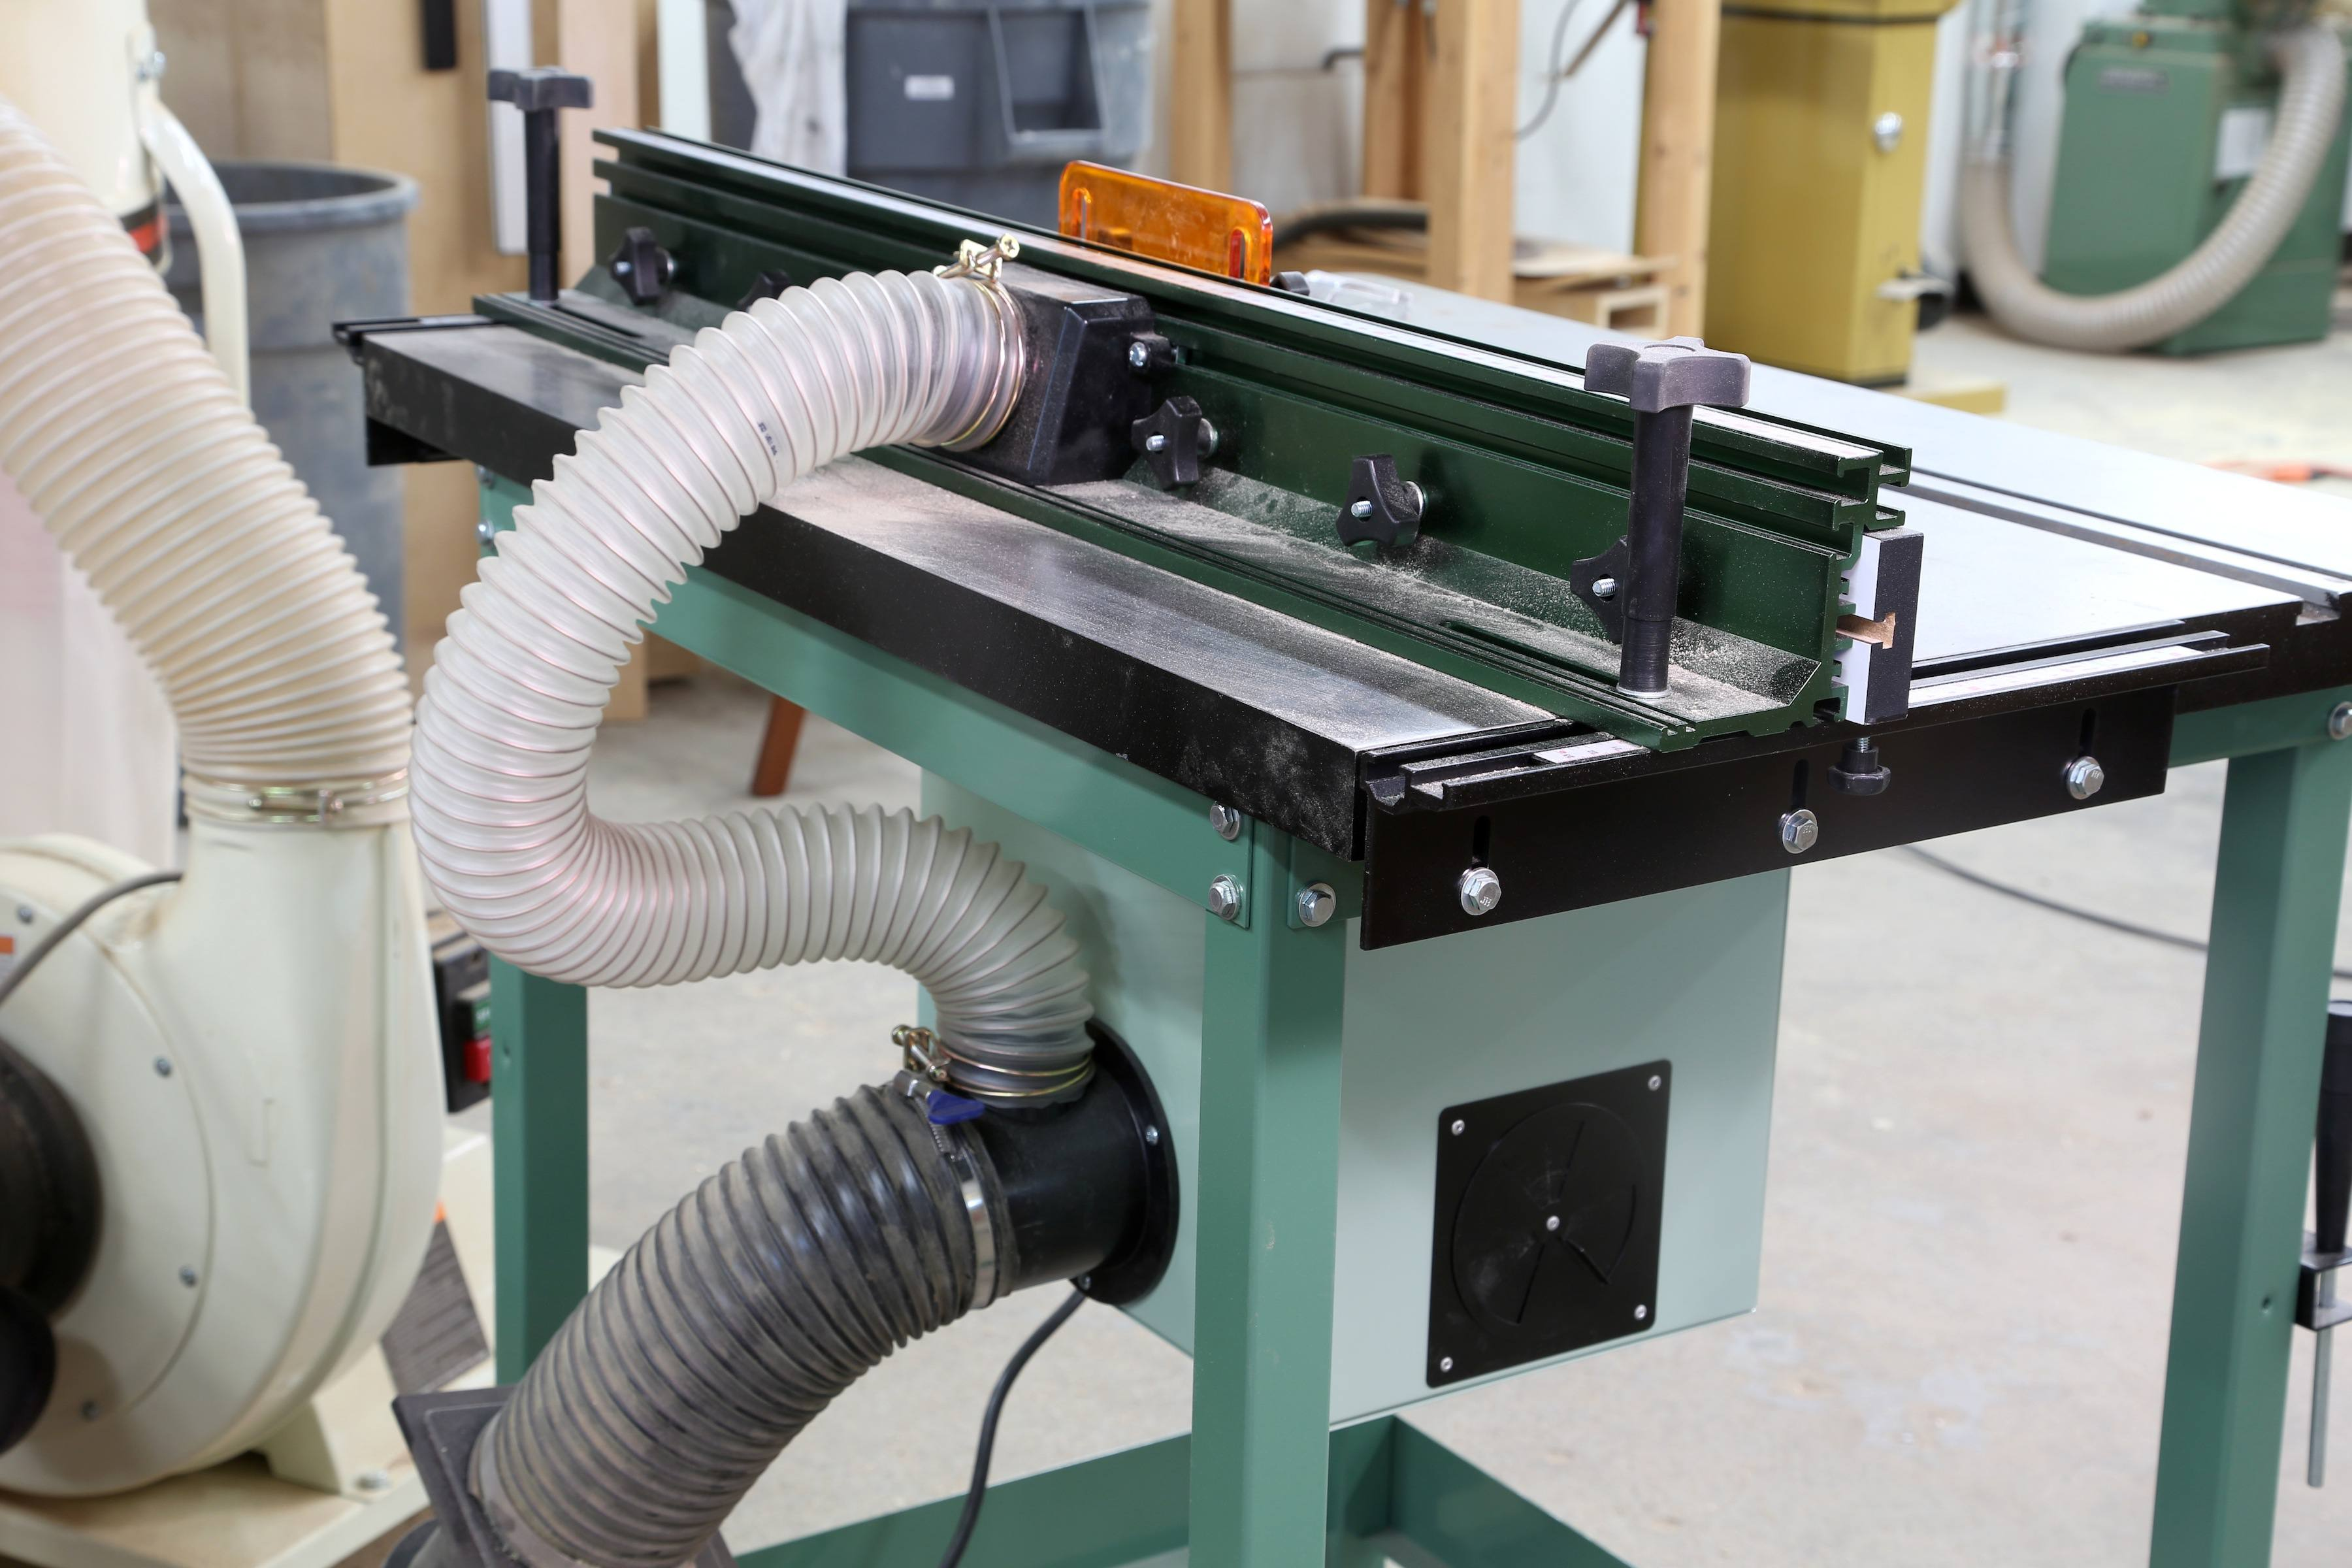 Take A Look At The Excalibur Deluxe Router Table Kit